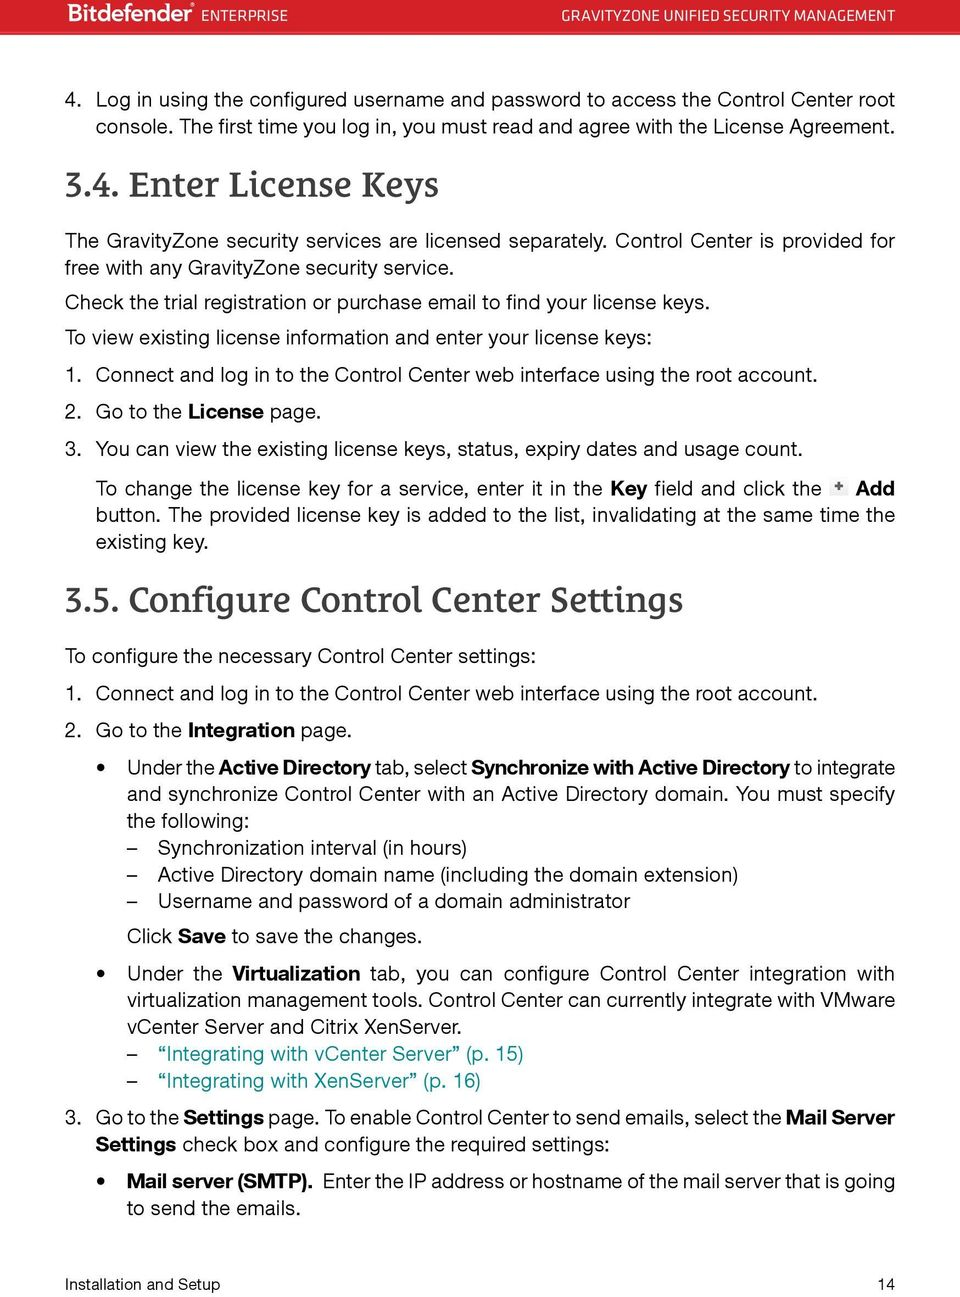 To view existing license information and enter your license keys: 1. Connect and log in to the Control Center web interface using the root account. 2. Go to the License page. 3.